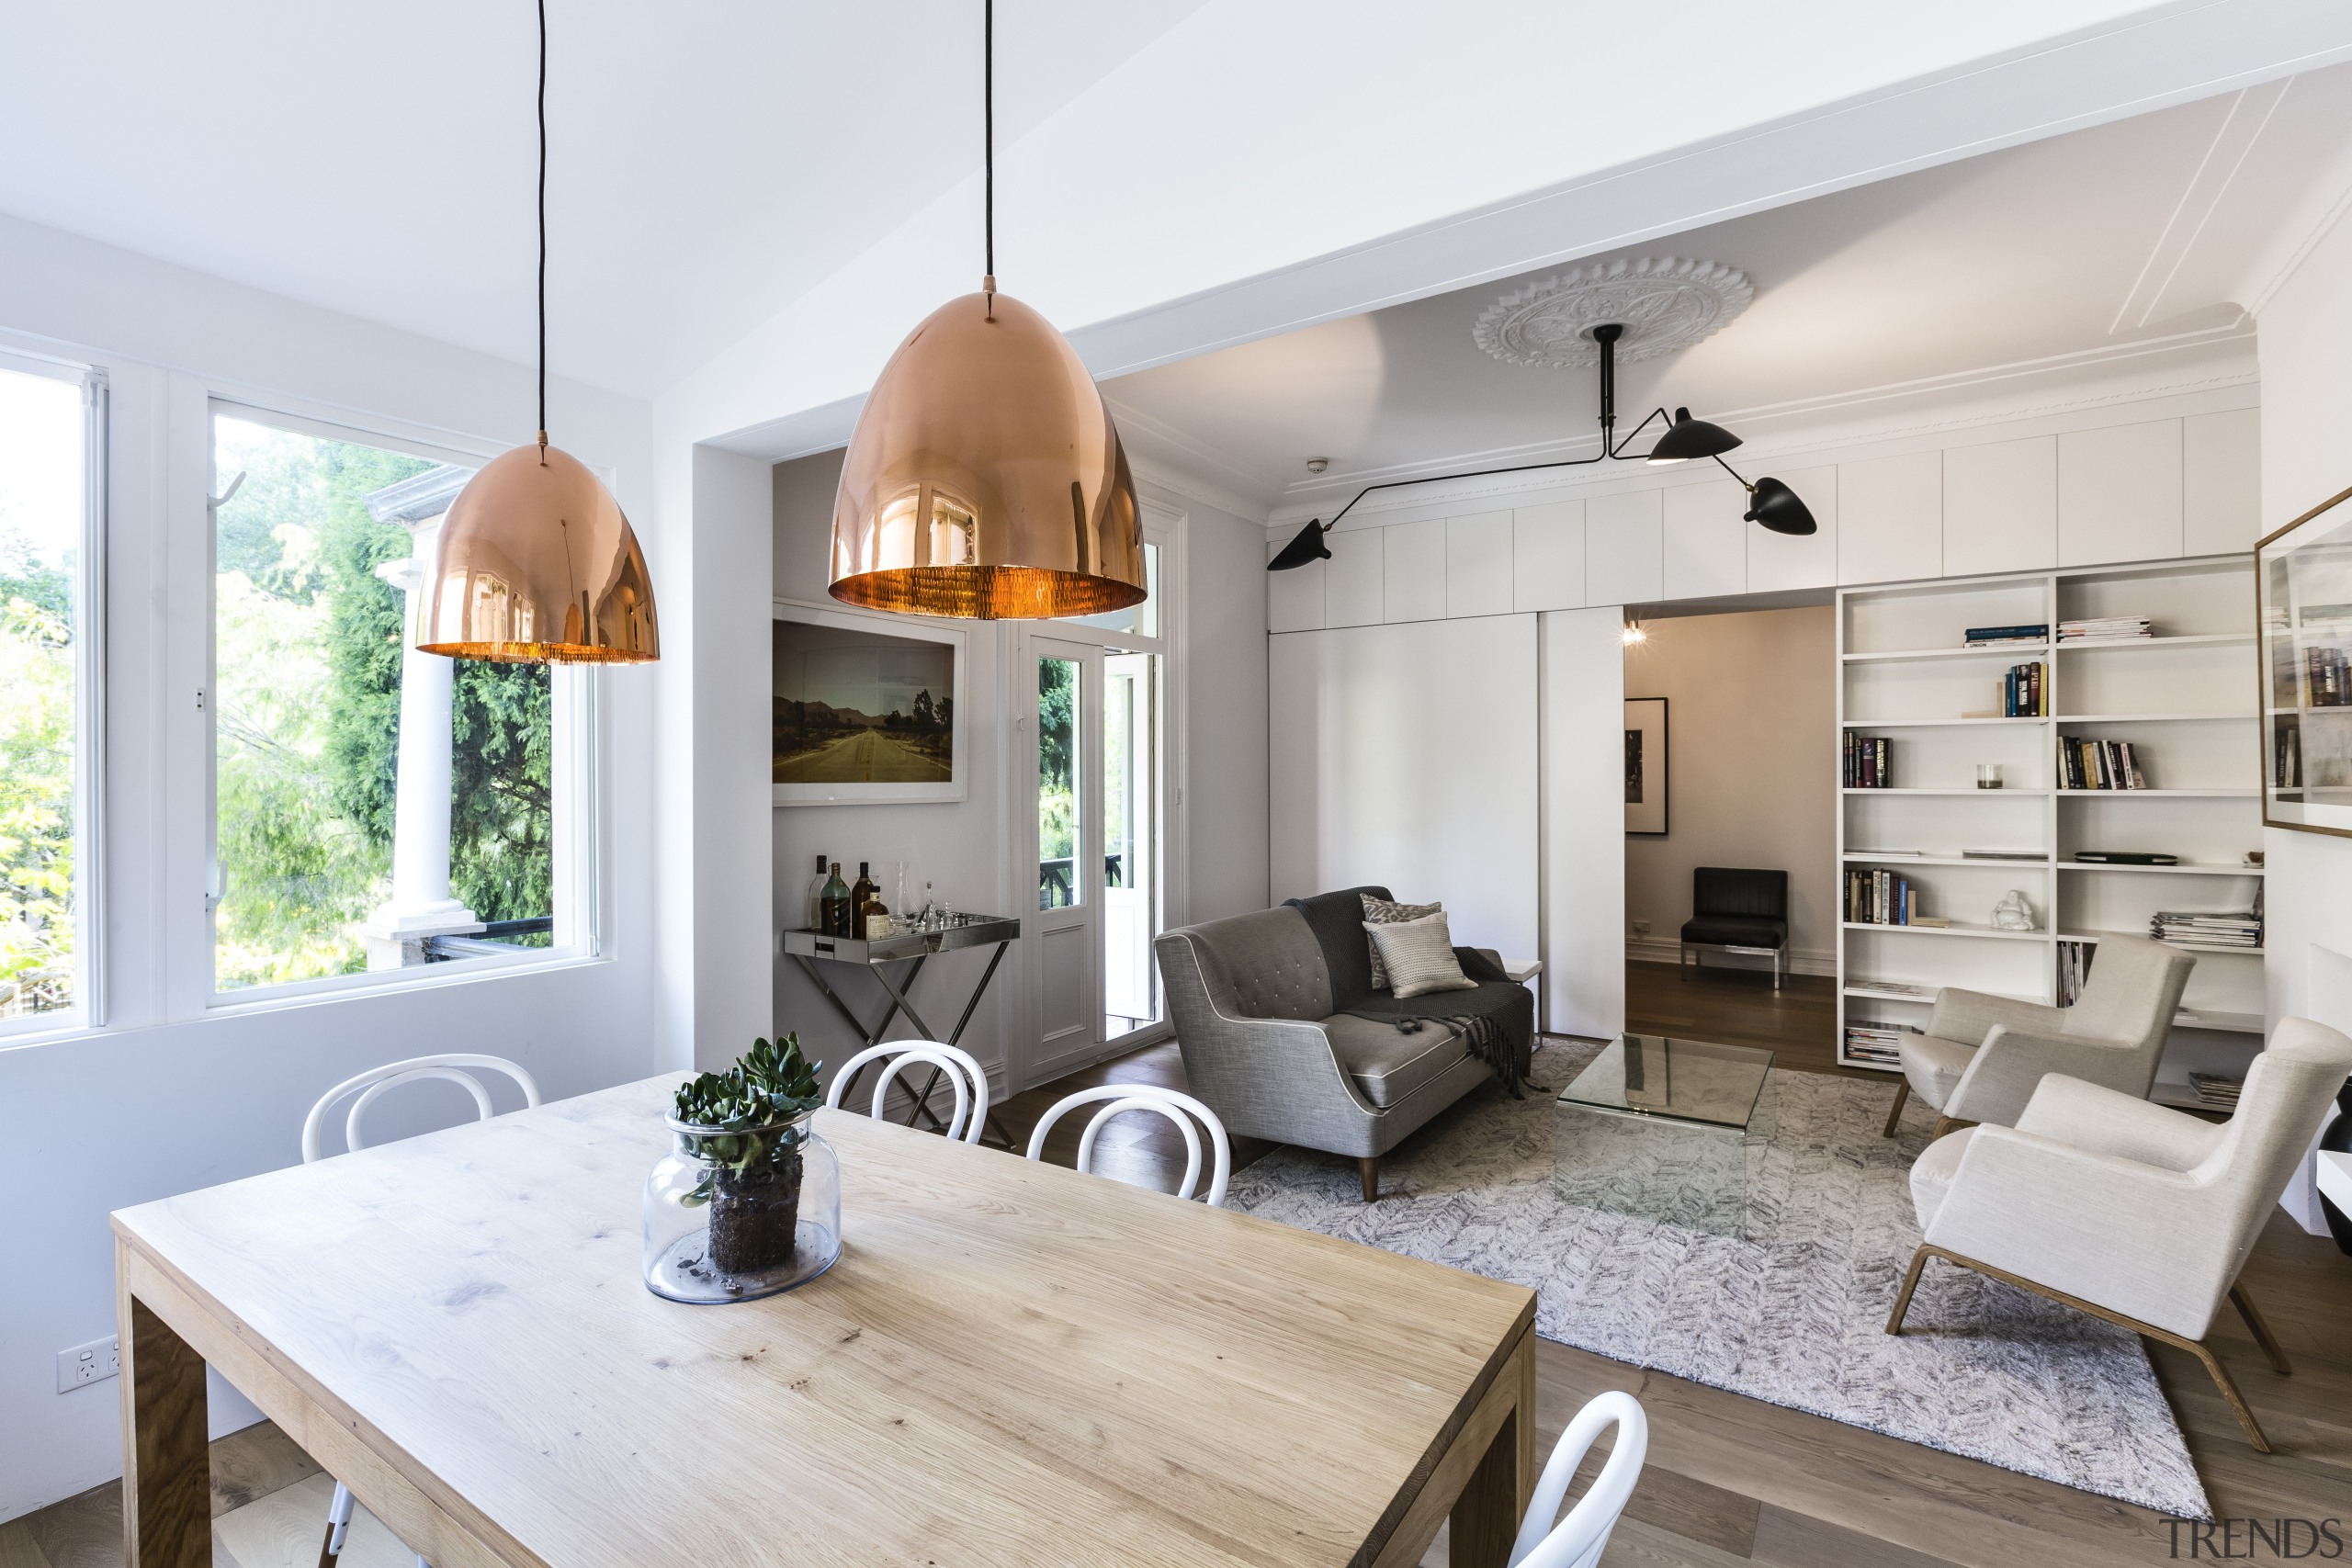 For this apartment renovation project, the architraves and interior design, living room, white, gray